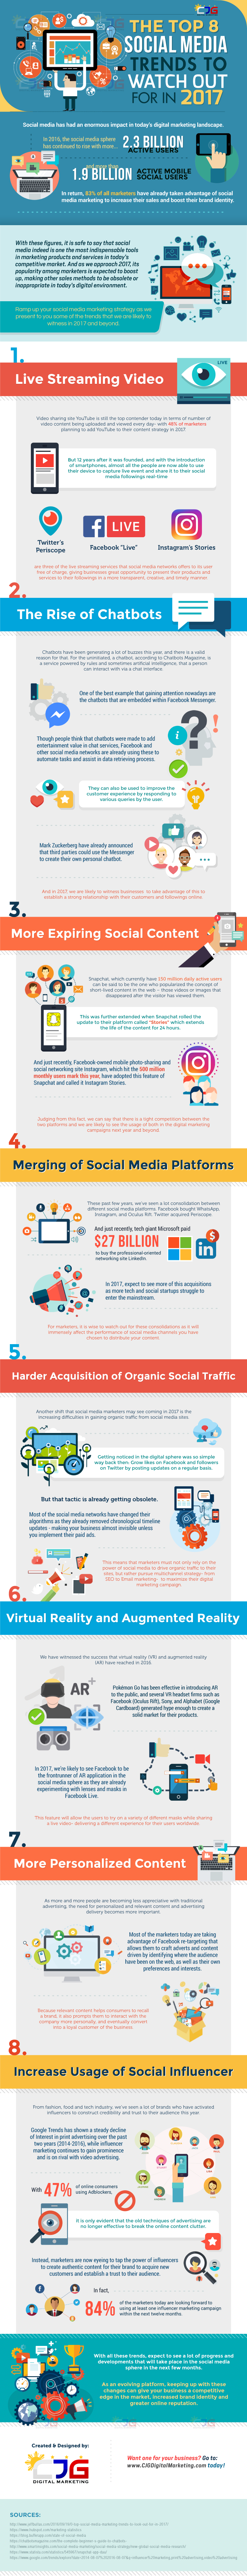 The Top 8 Hottest Social Media Marketing Trends in 2017 (Infographic) - An Infographic from CJG Digital Marketing